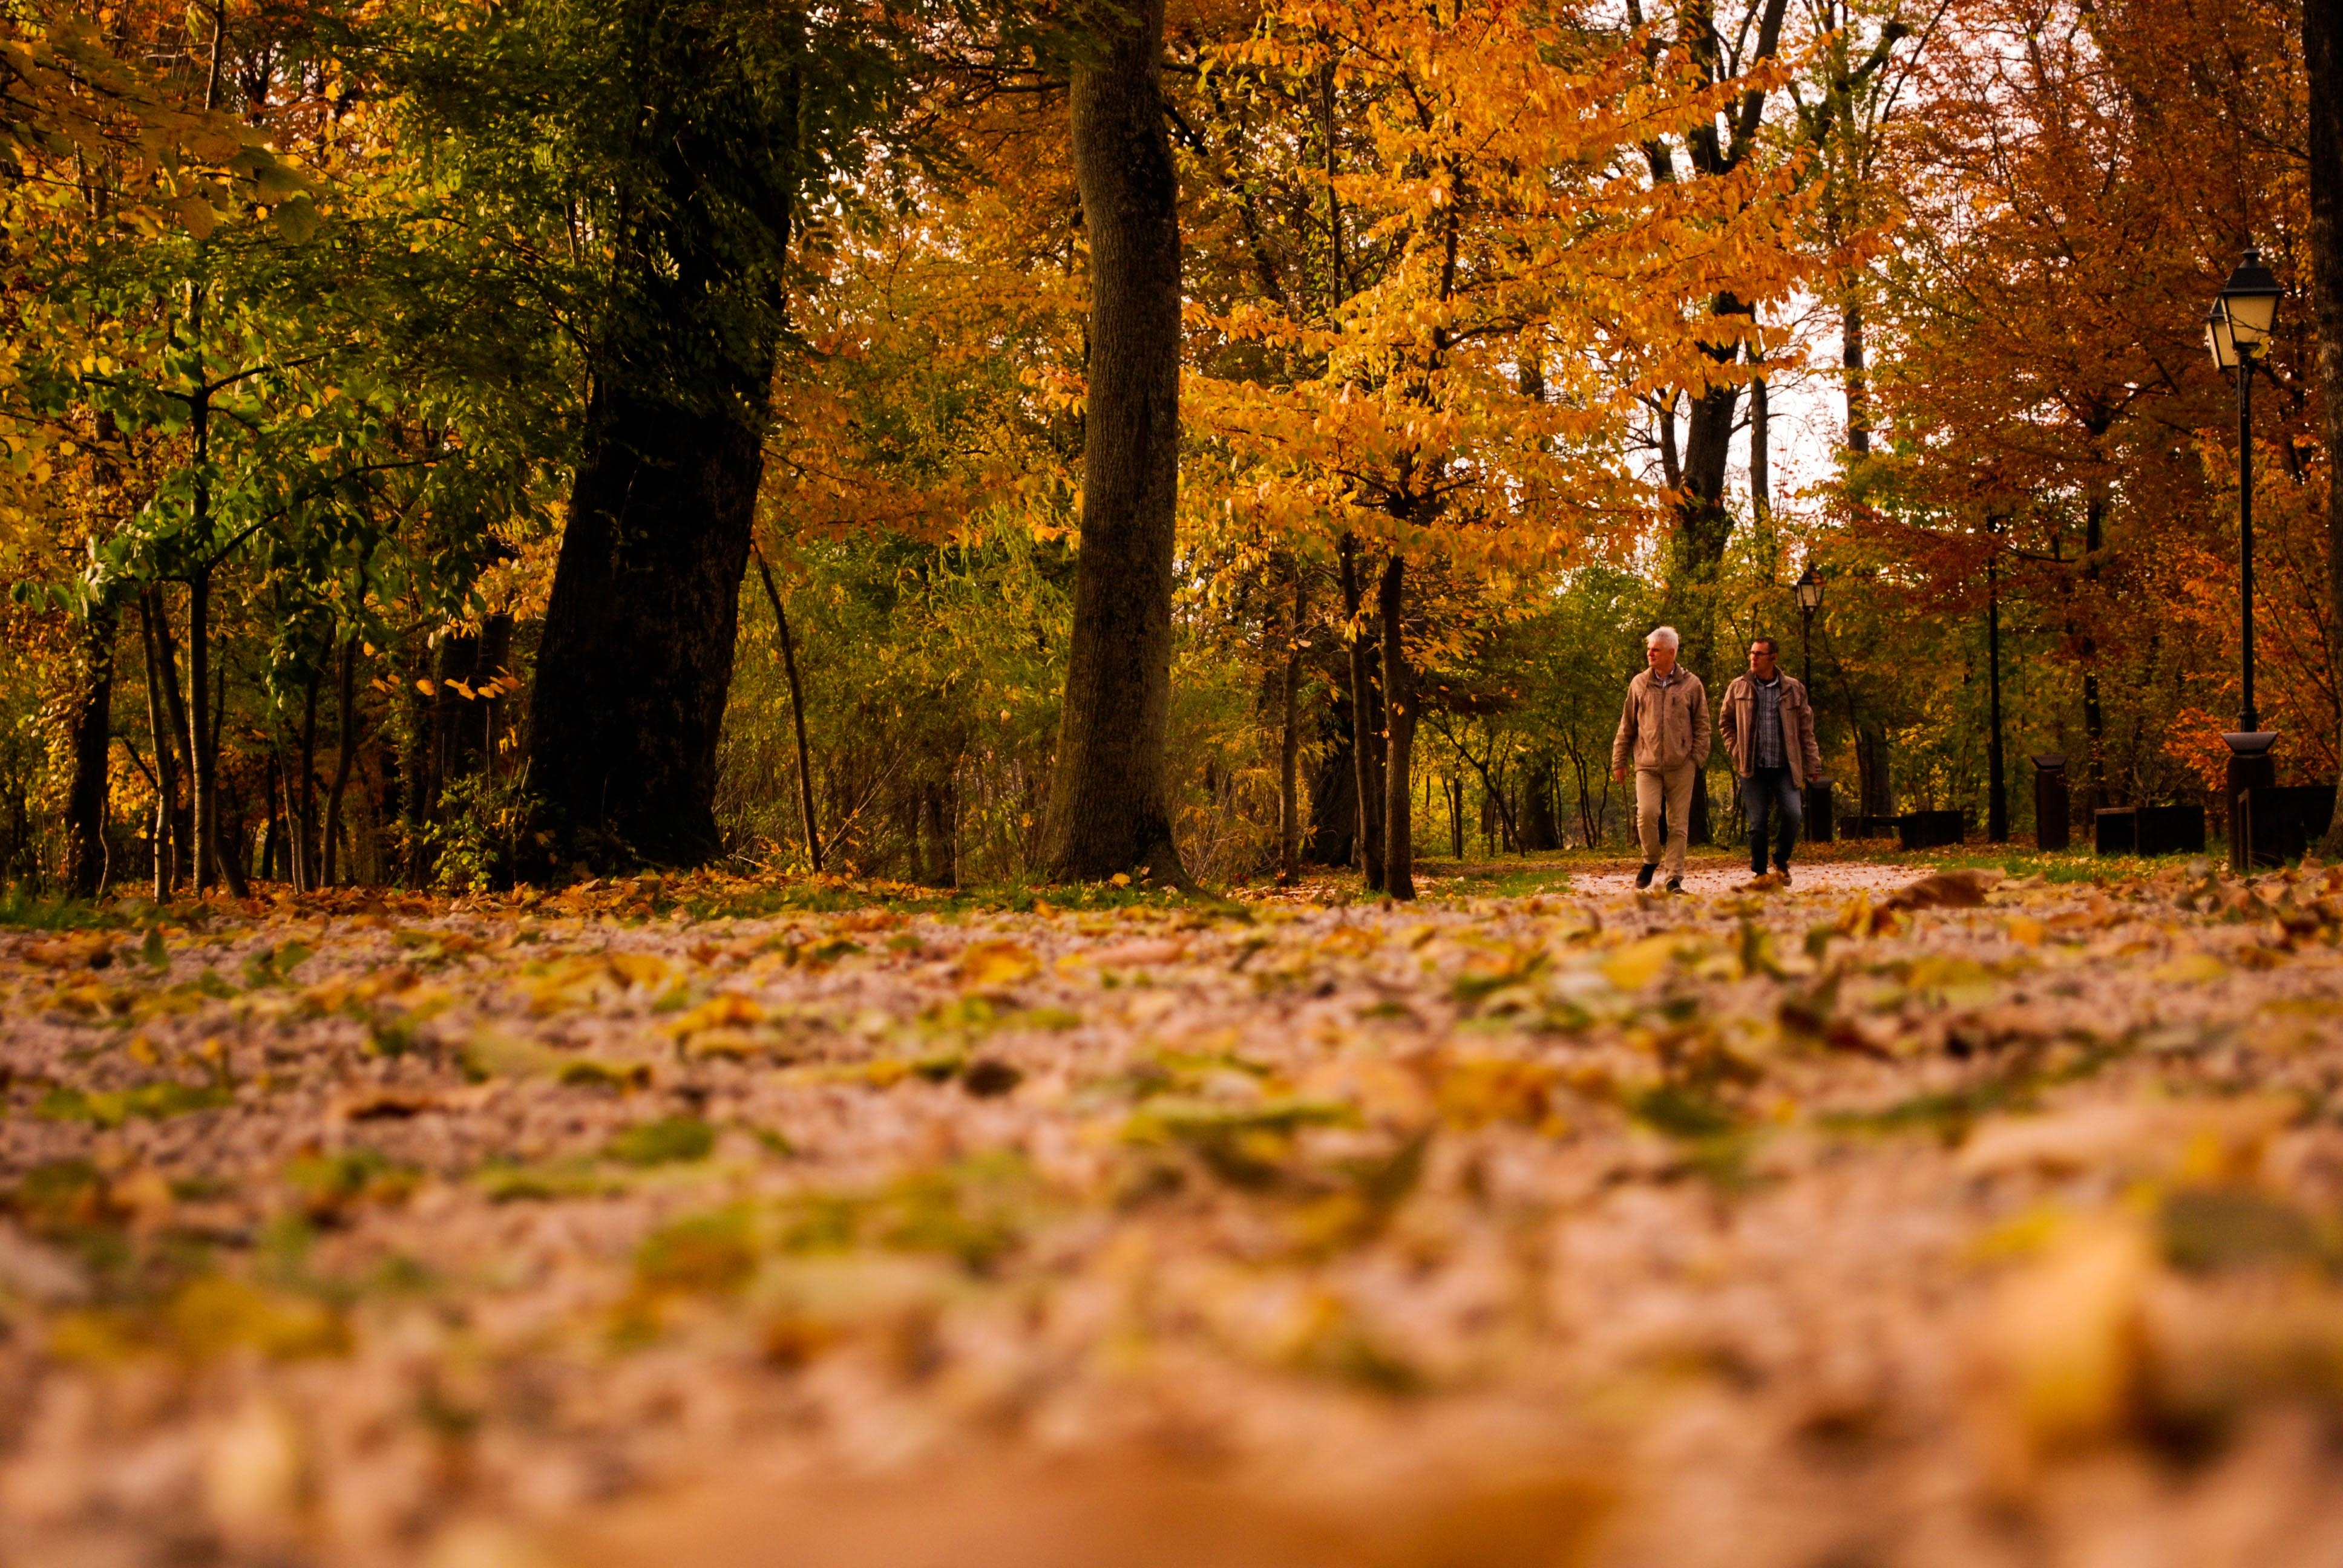 View of Trees in Forest during Autumn, Autumn, Men, Trees, Sun, HQ Photo